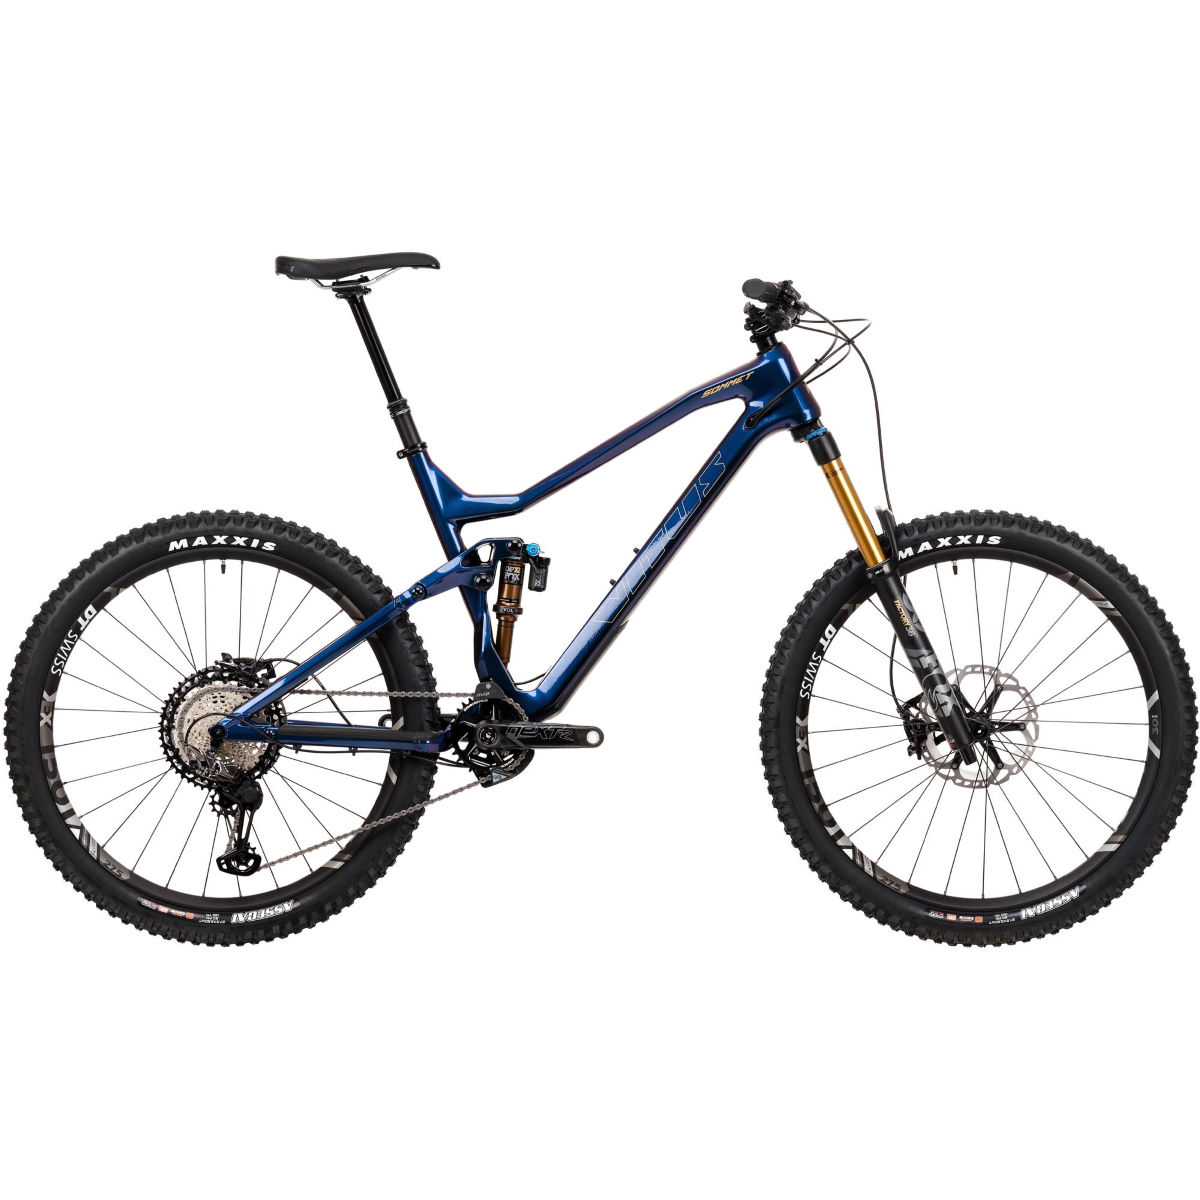 Vitus Vitus Sommet 27 CRX Bike (XTR/XT 1x12 - 2020)   Full Suspension Mountain Bikes